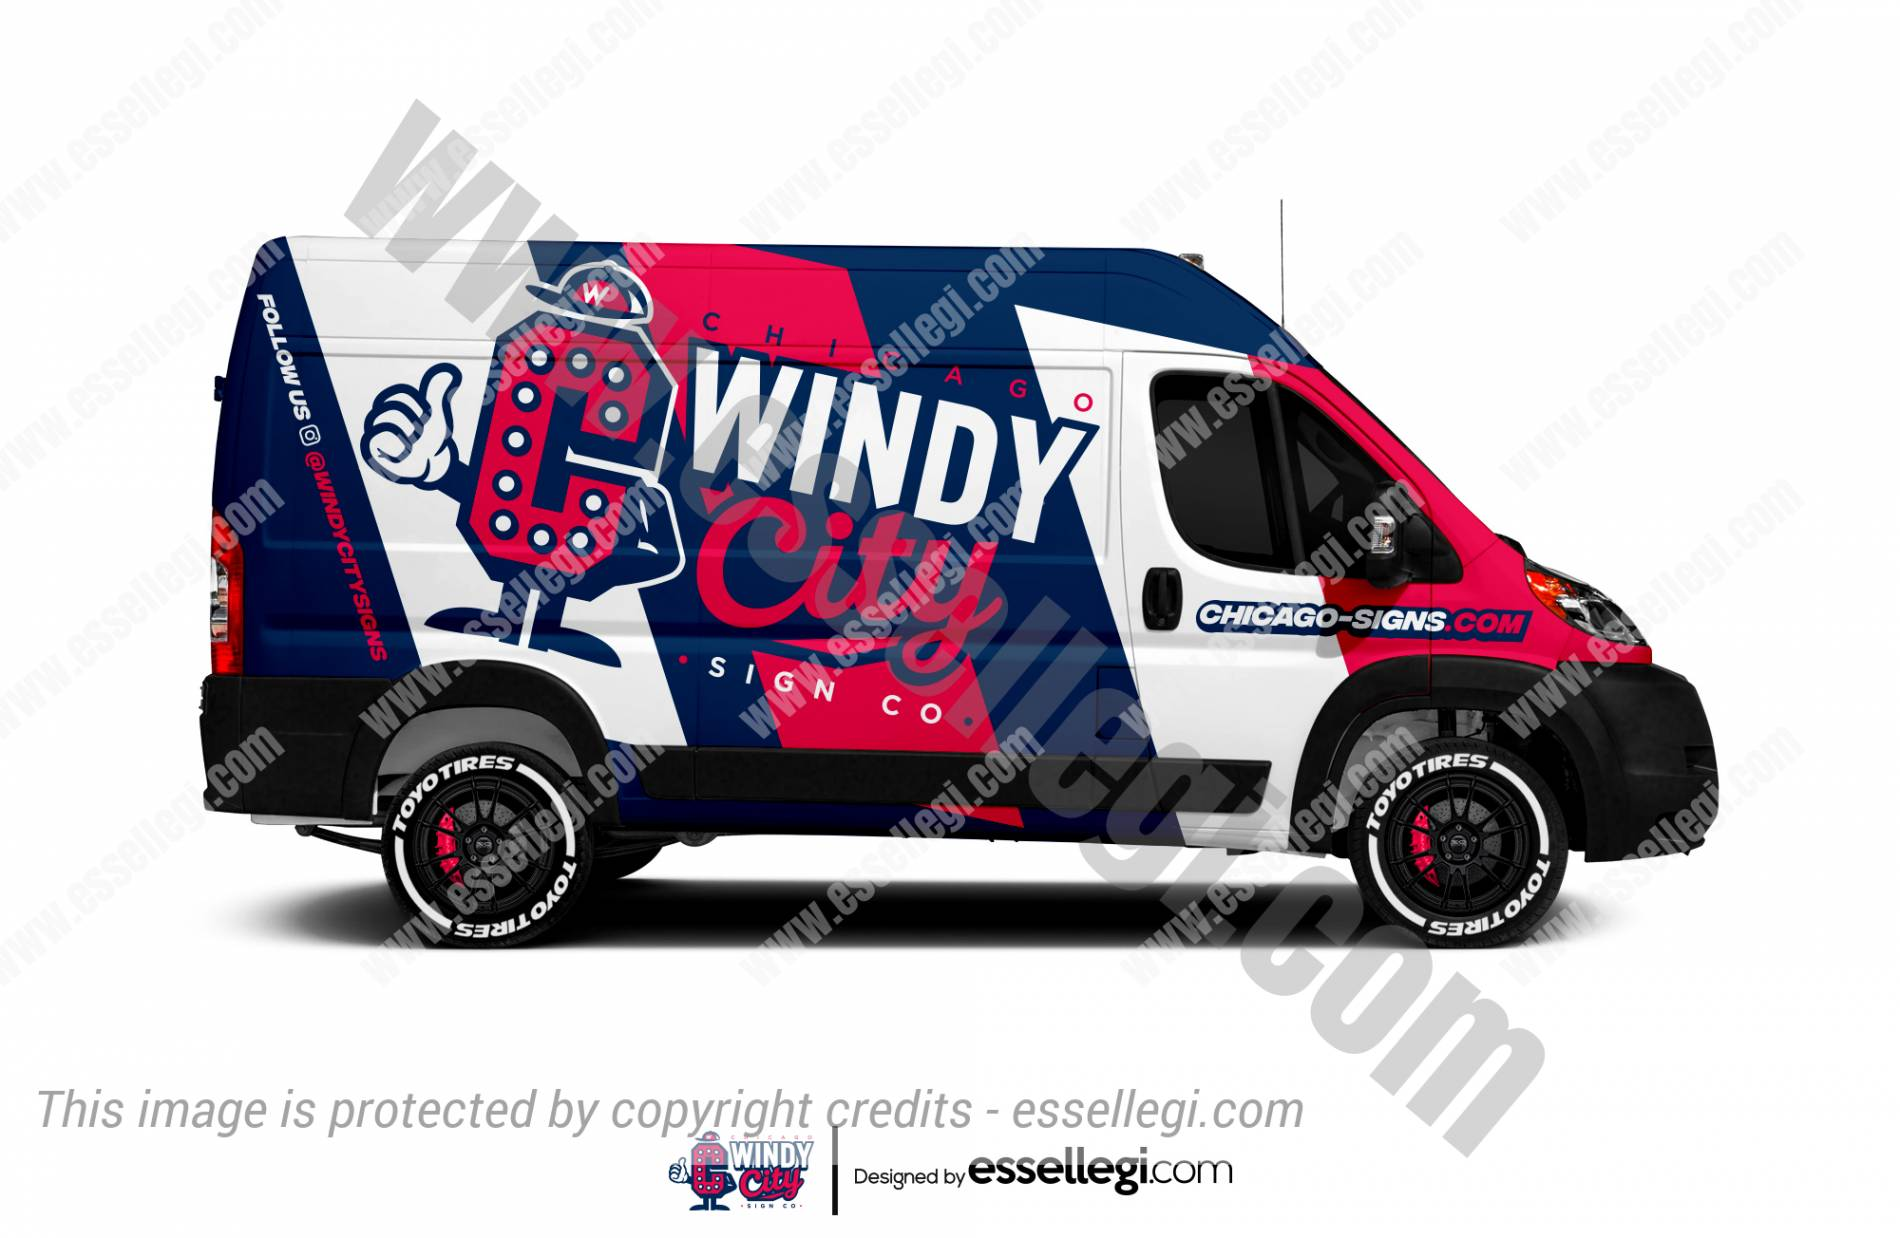 Dodge RAM ProMaster Wrap Design. Dodge RAM ProMaster | Van Wrap Design by Essellegi. Van Signs, Van Signage, Van Wrapping, Van Signwriting, Van Wrap Designer, Signs for Van, Van Logo, Van Graphic by Essellegi.